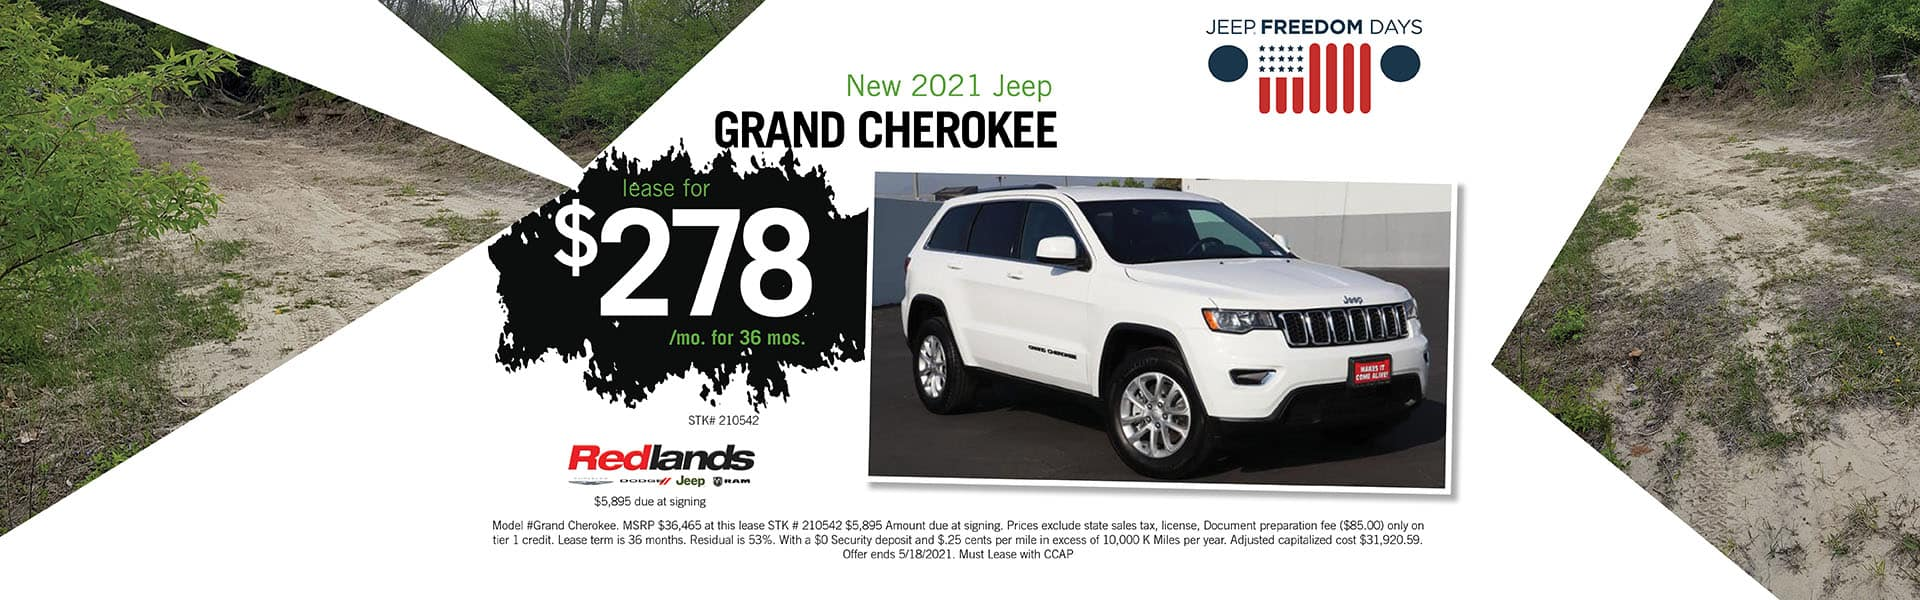 051.195.01_Redlands_CDJR_1920x600_Gr_Cherokee_Dealer_Web (1)